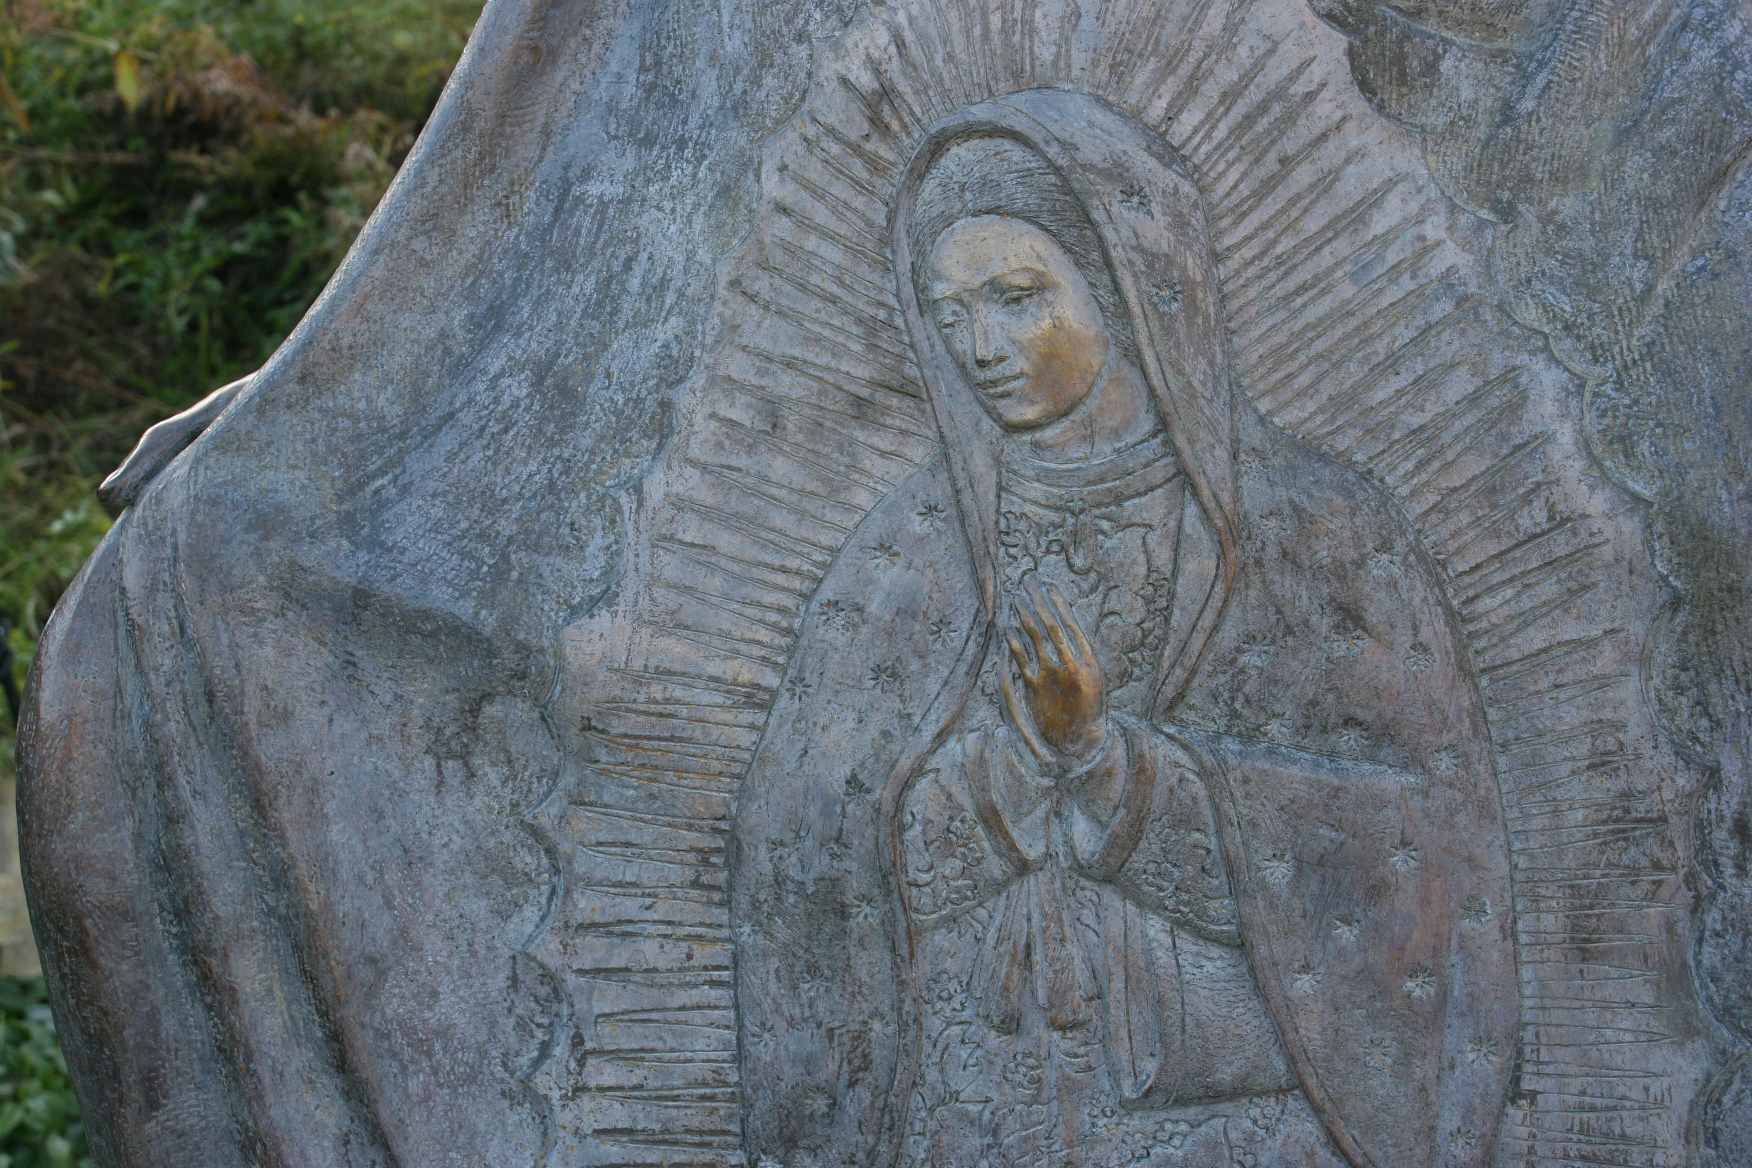 Great This Image Of The Lady Of Guadalupe Is Woven Into The Juan Diego Statue.